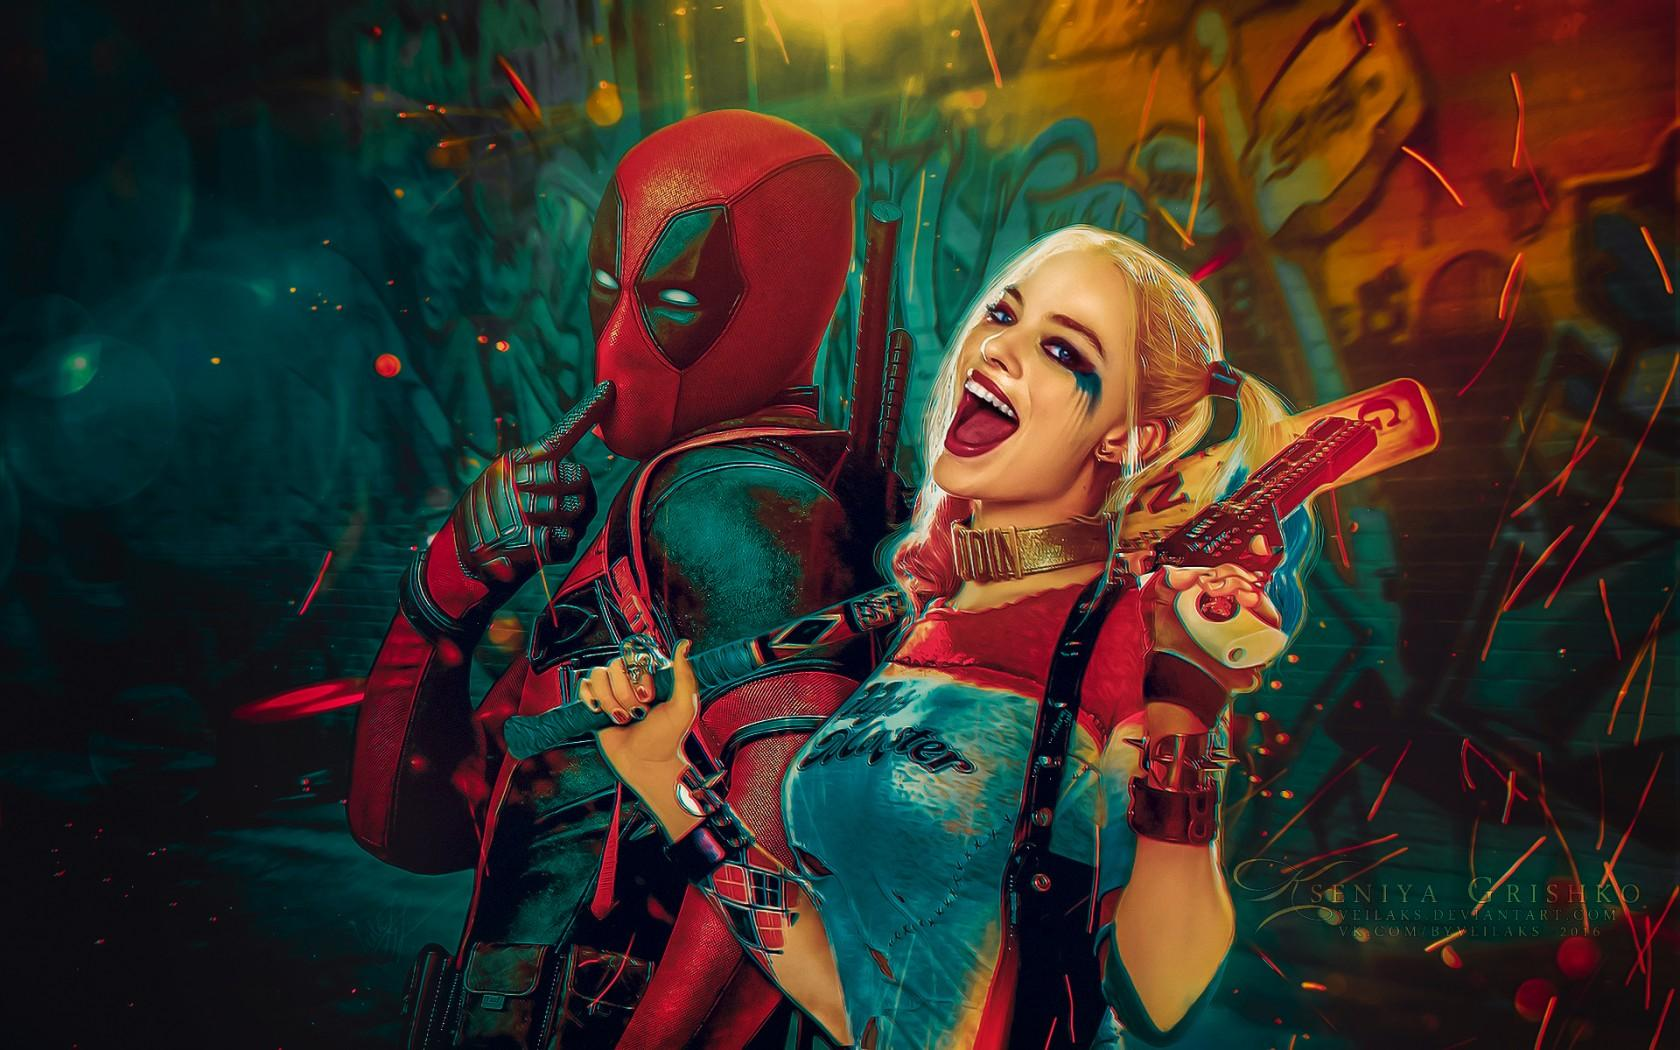 Harley Quinn Wallpapers HD Backgrounds, Images, Pics, Photos Free ...